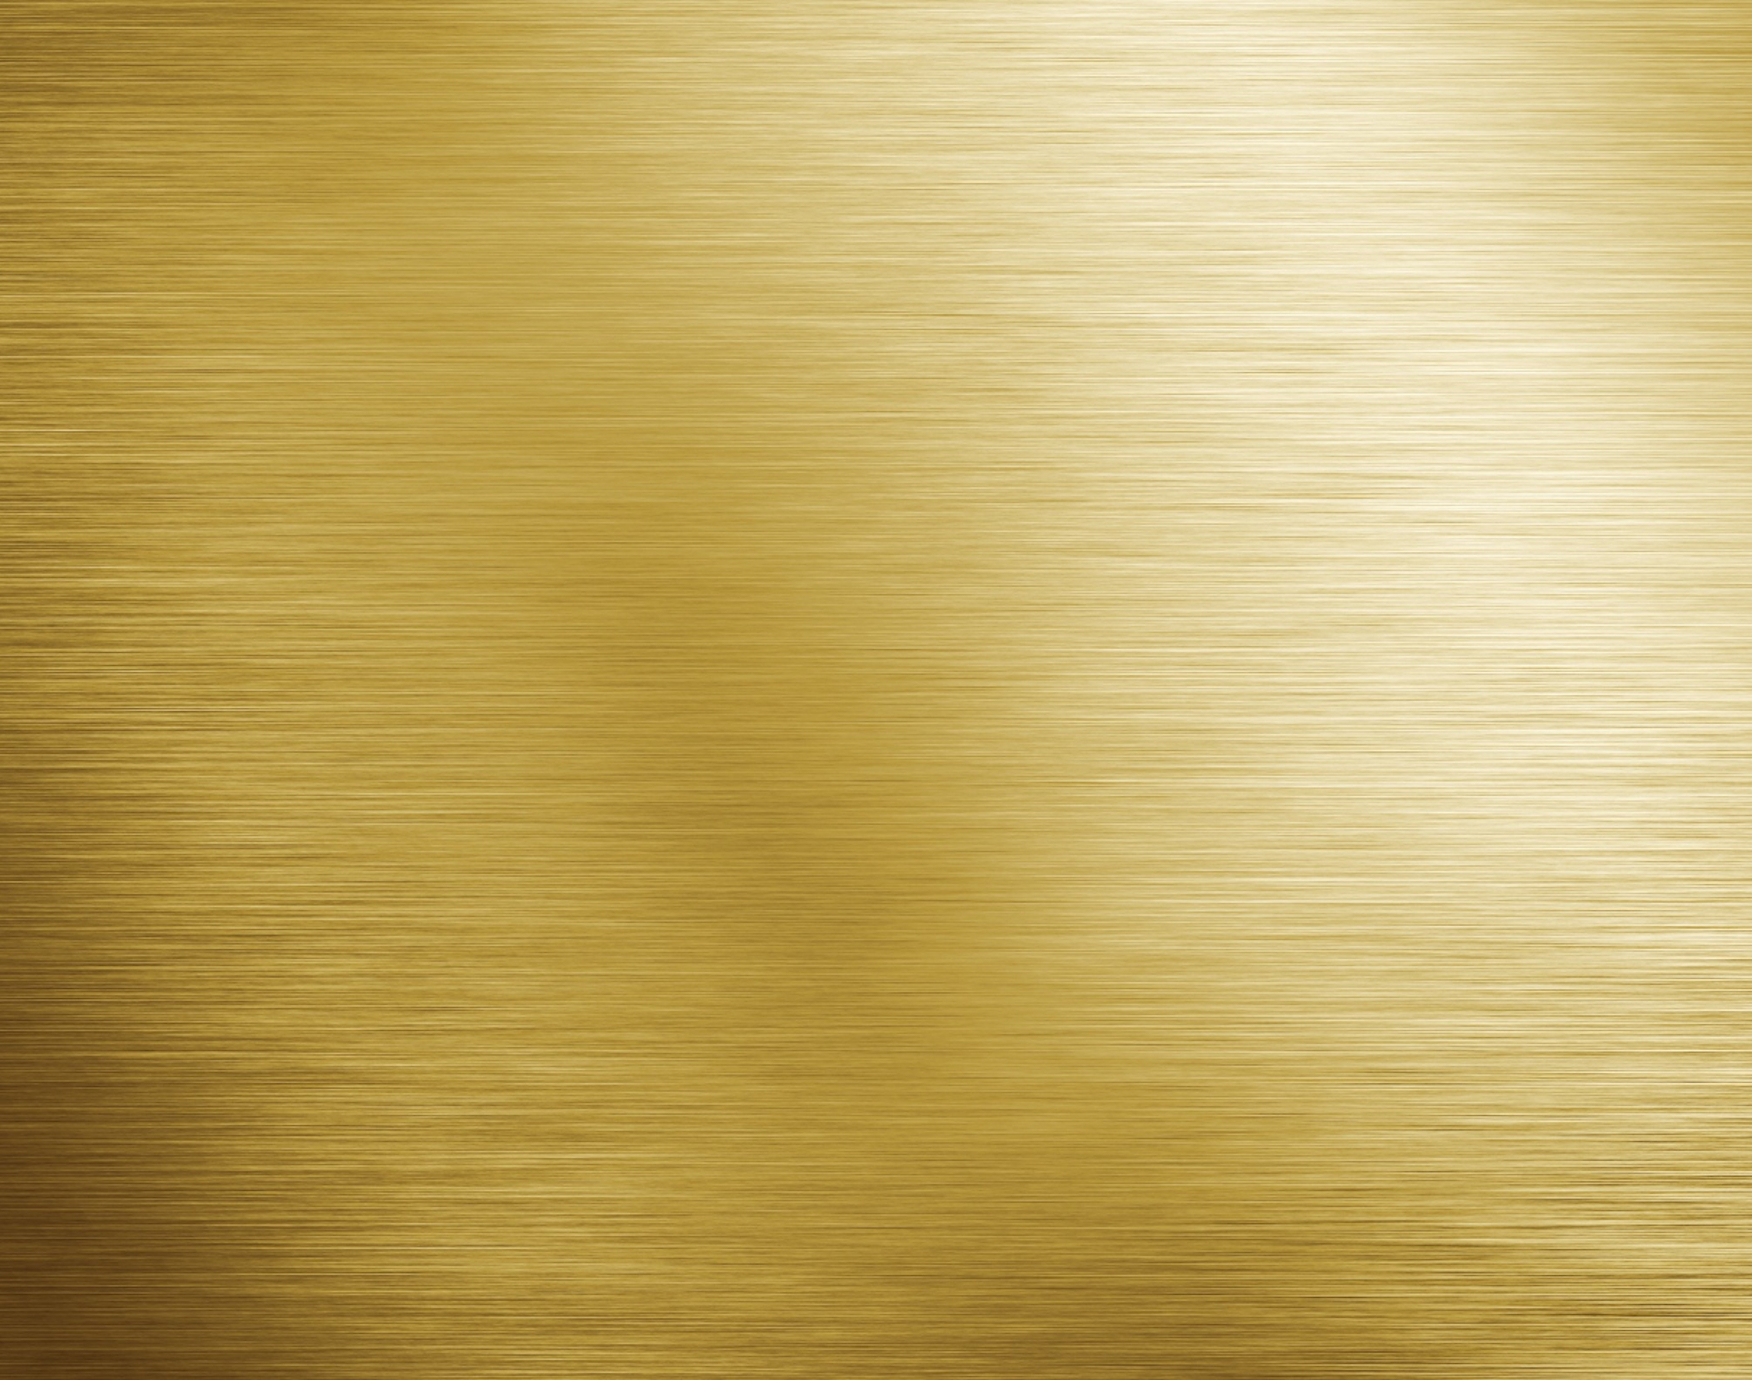 shiny gold background 2   If The Stiletto Fits 1752x1380